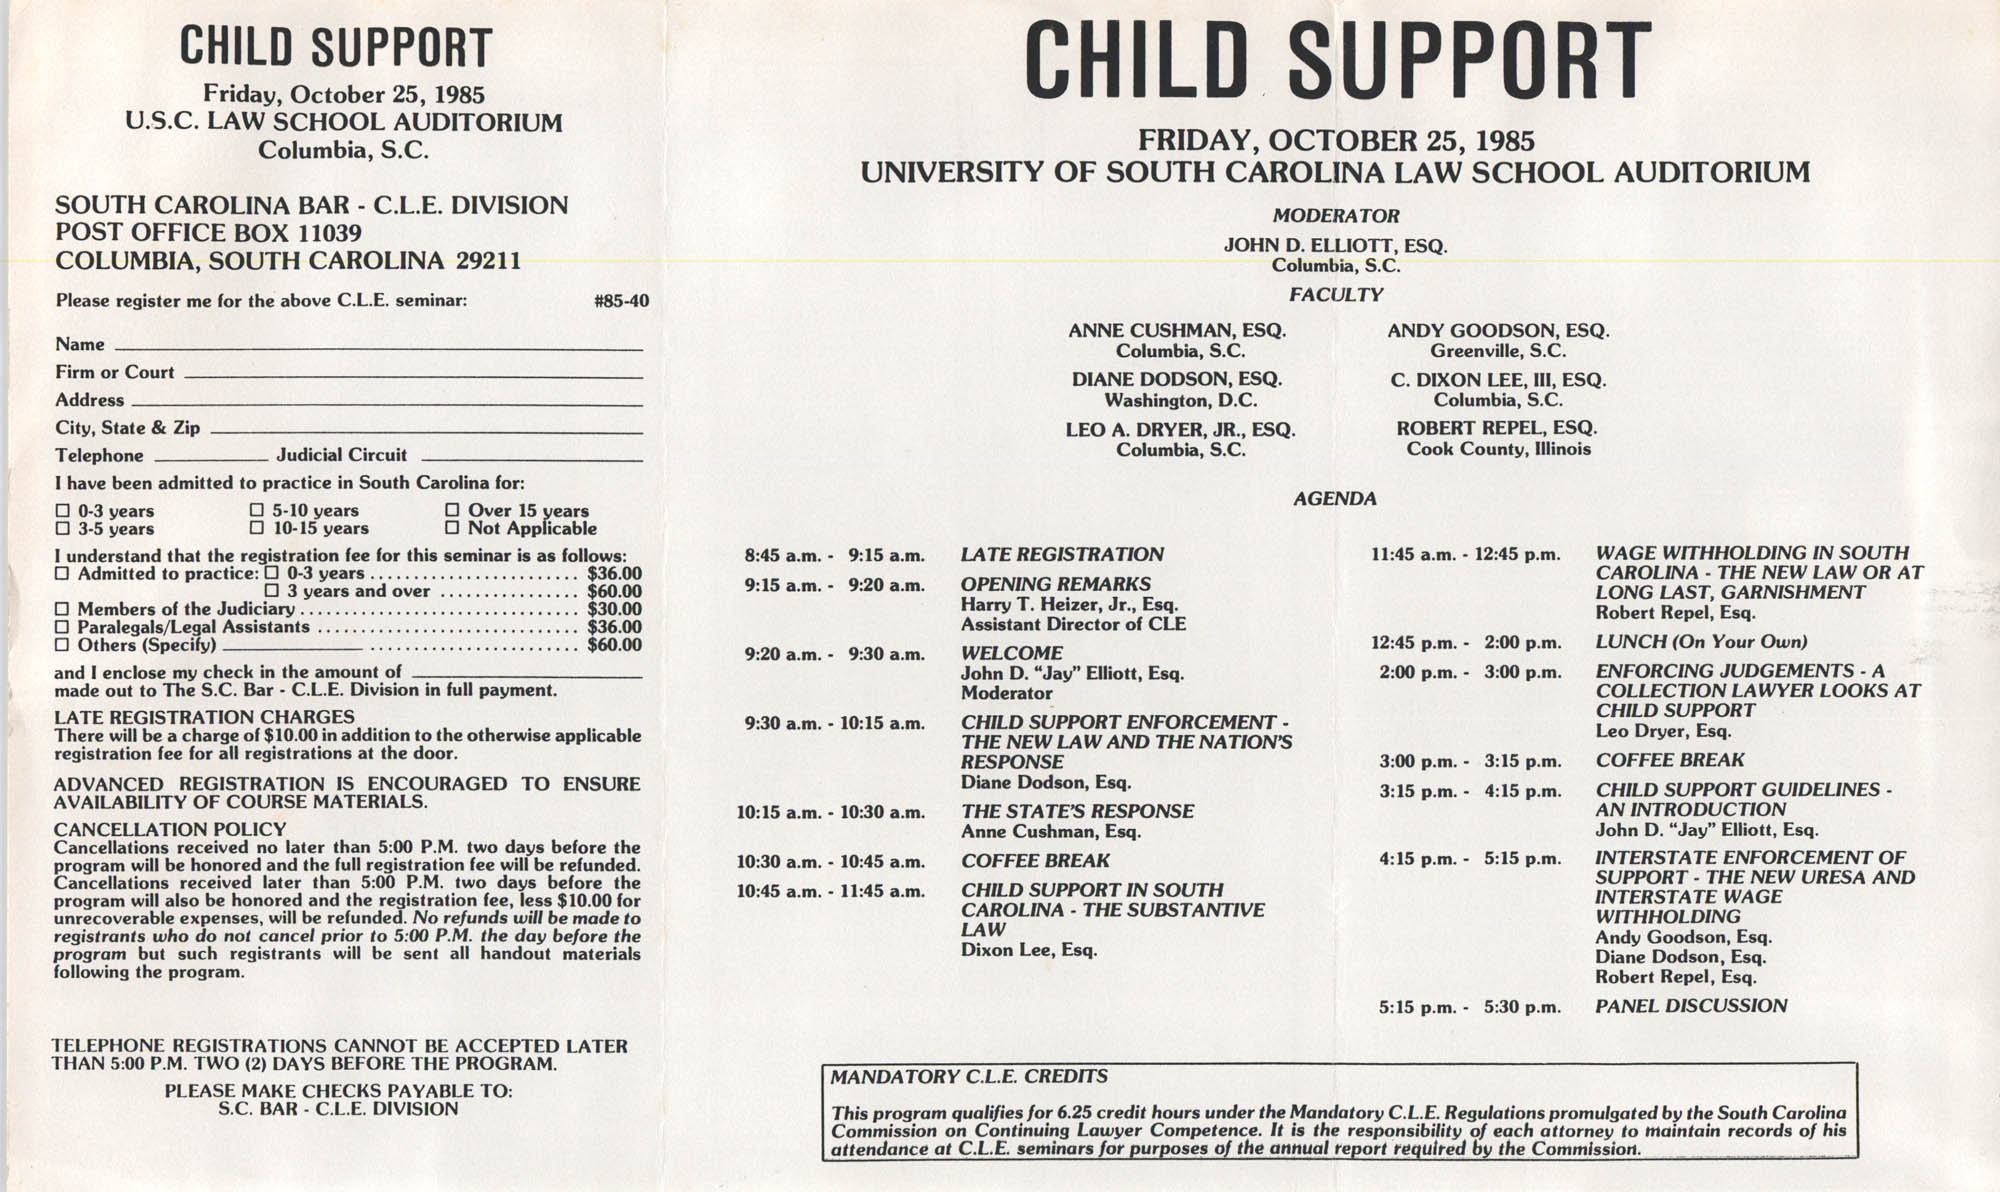 Child Support, Continuing Legal Education Seminar, October 25, 1985